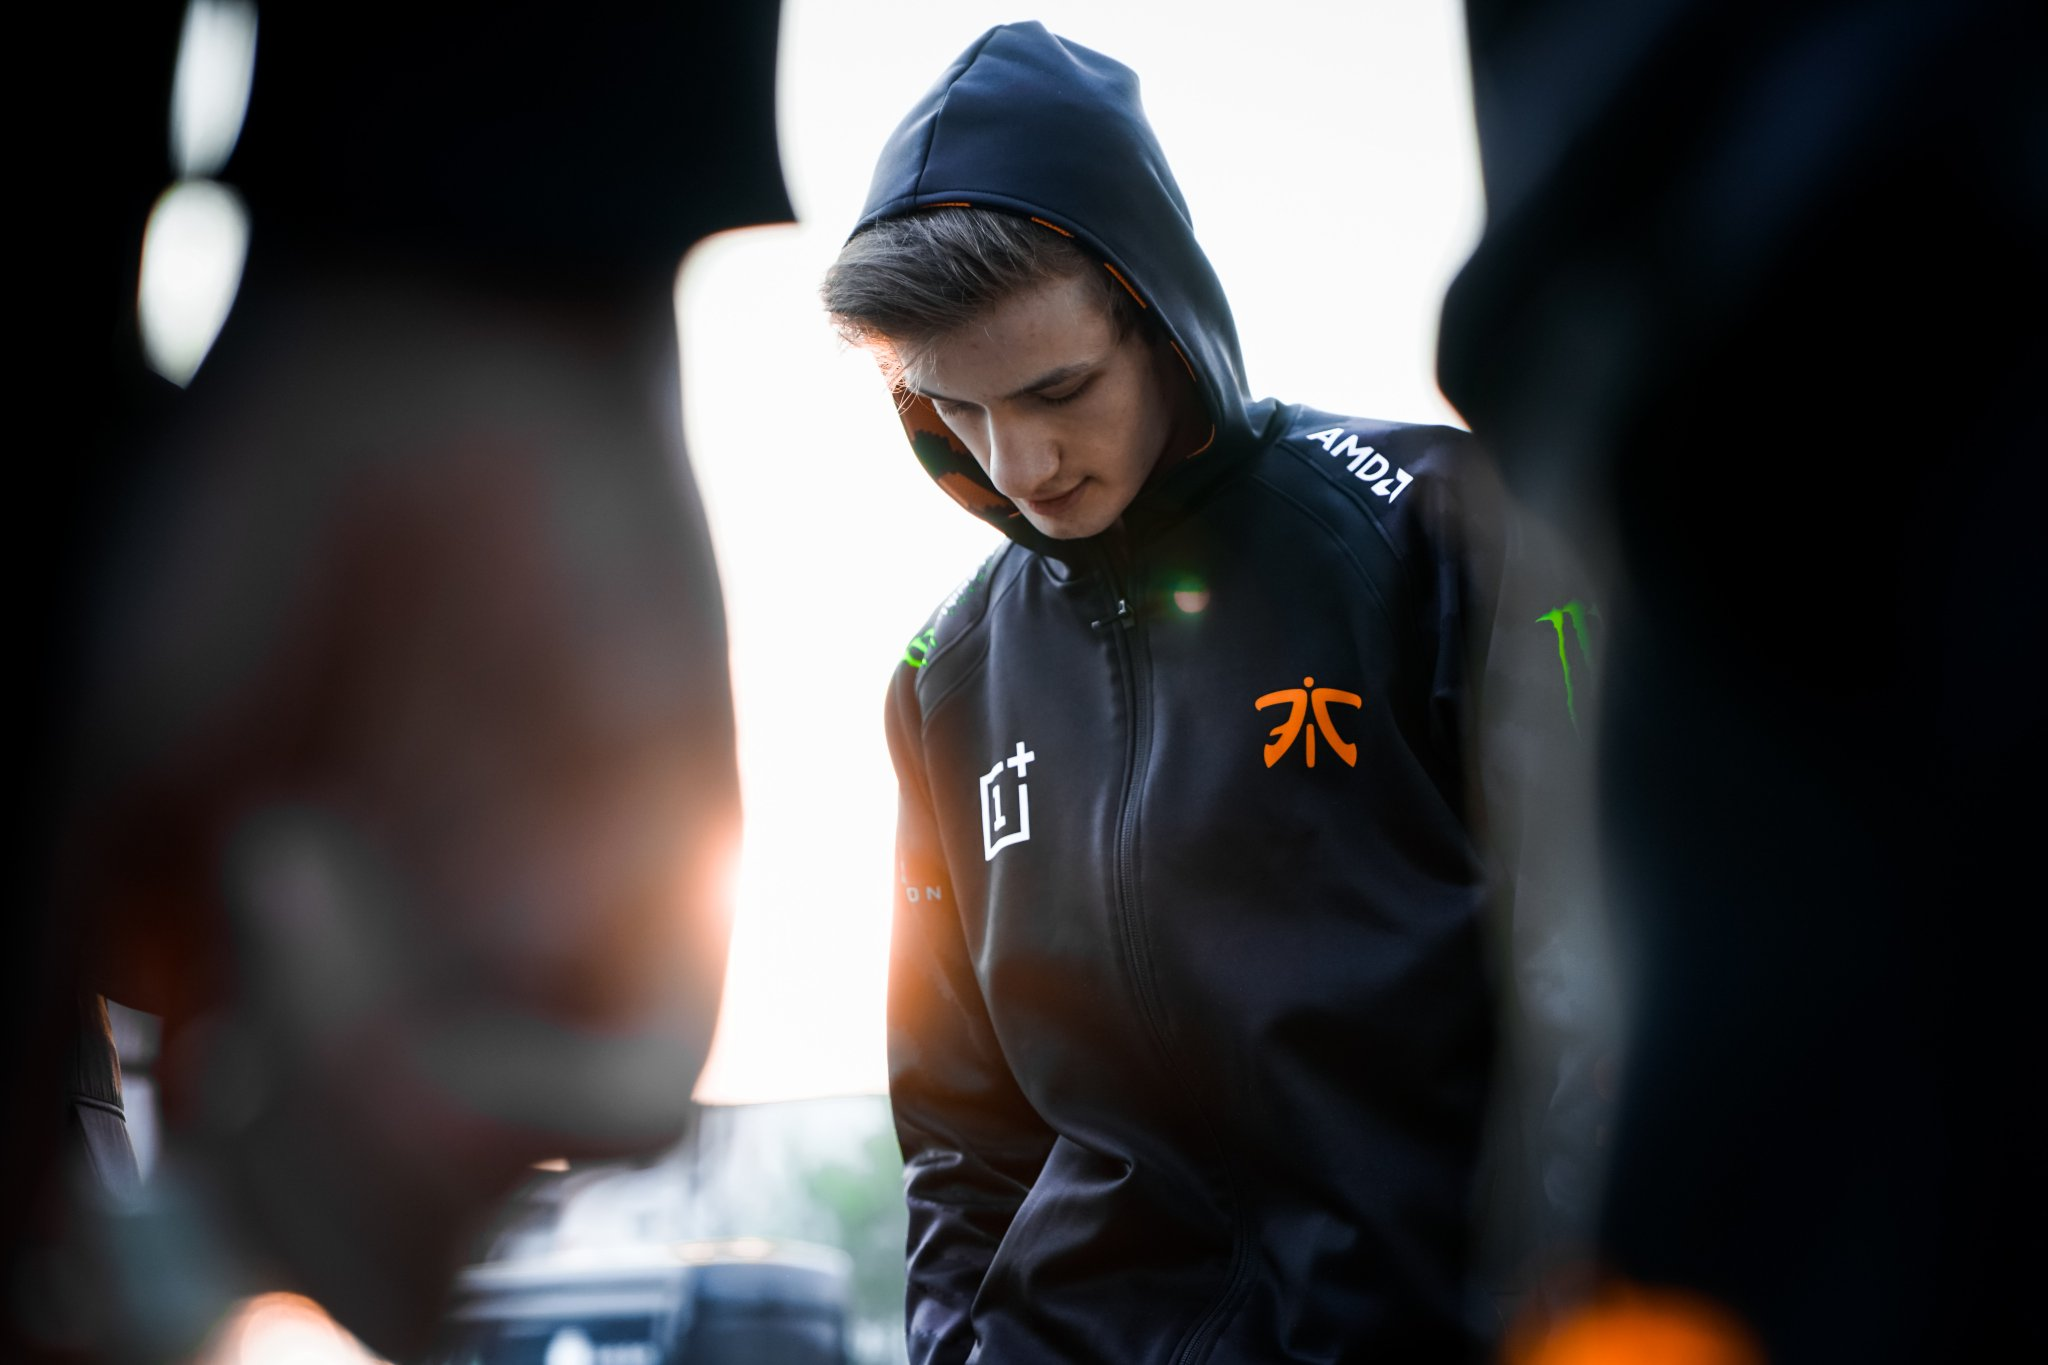 Fnatic vs Origen LEC 2019 preview